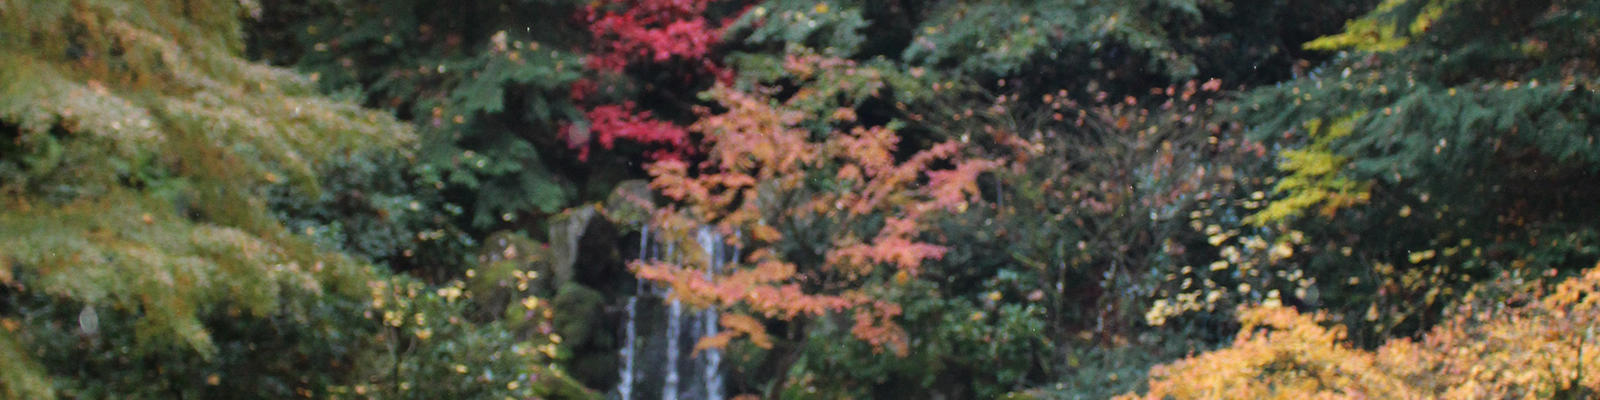 Portland Japanese Garden in November with fall foliage on display